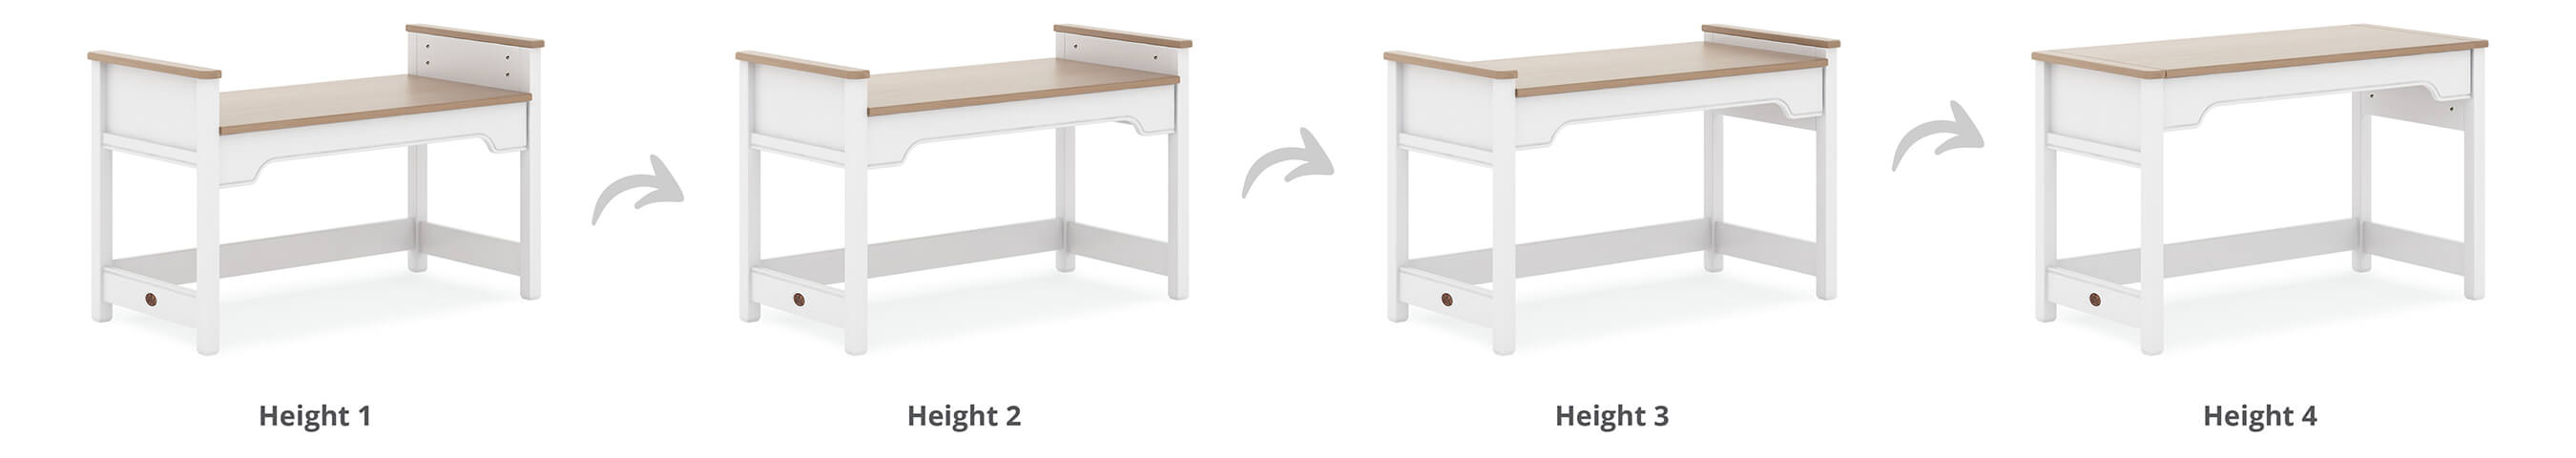 Feature_Highlight_CMS_Blocks_Height_Adjustable_Desks_and_Chairs_January_2021-029